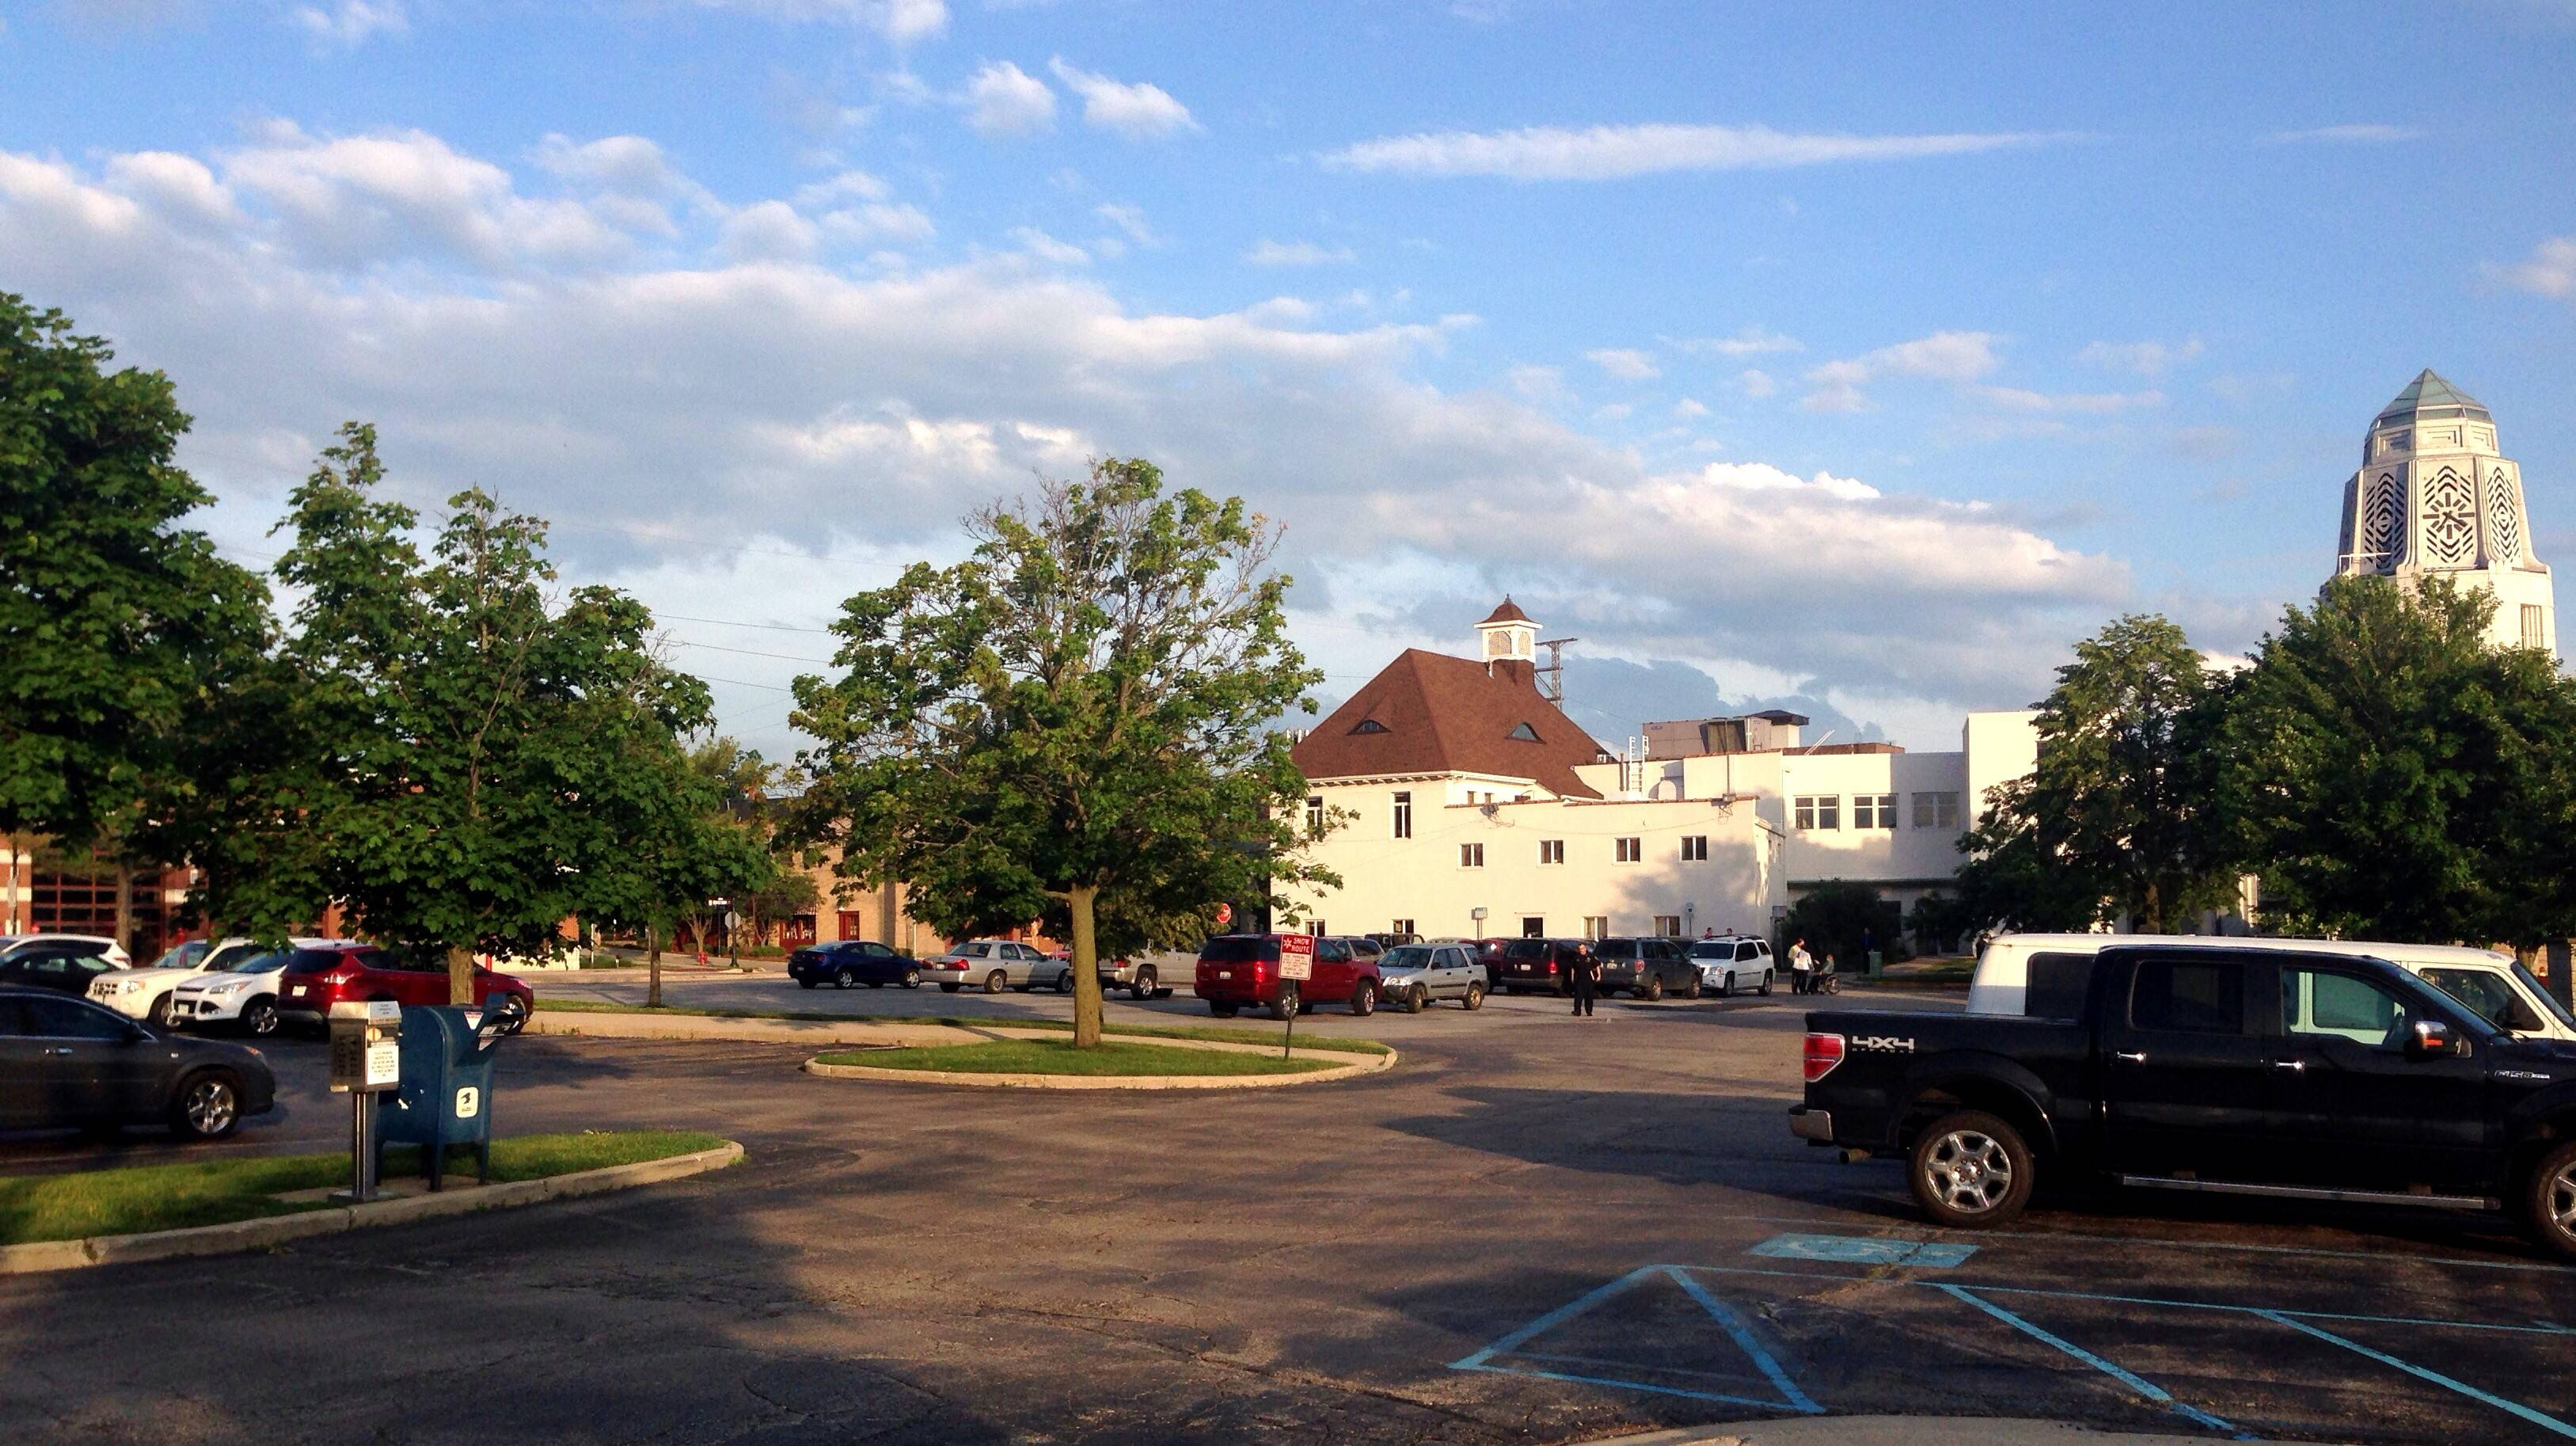 St. Charles' municipal parking lot is headed for a renovation that may cost more than $1 million.